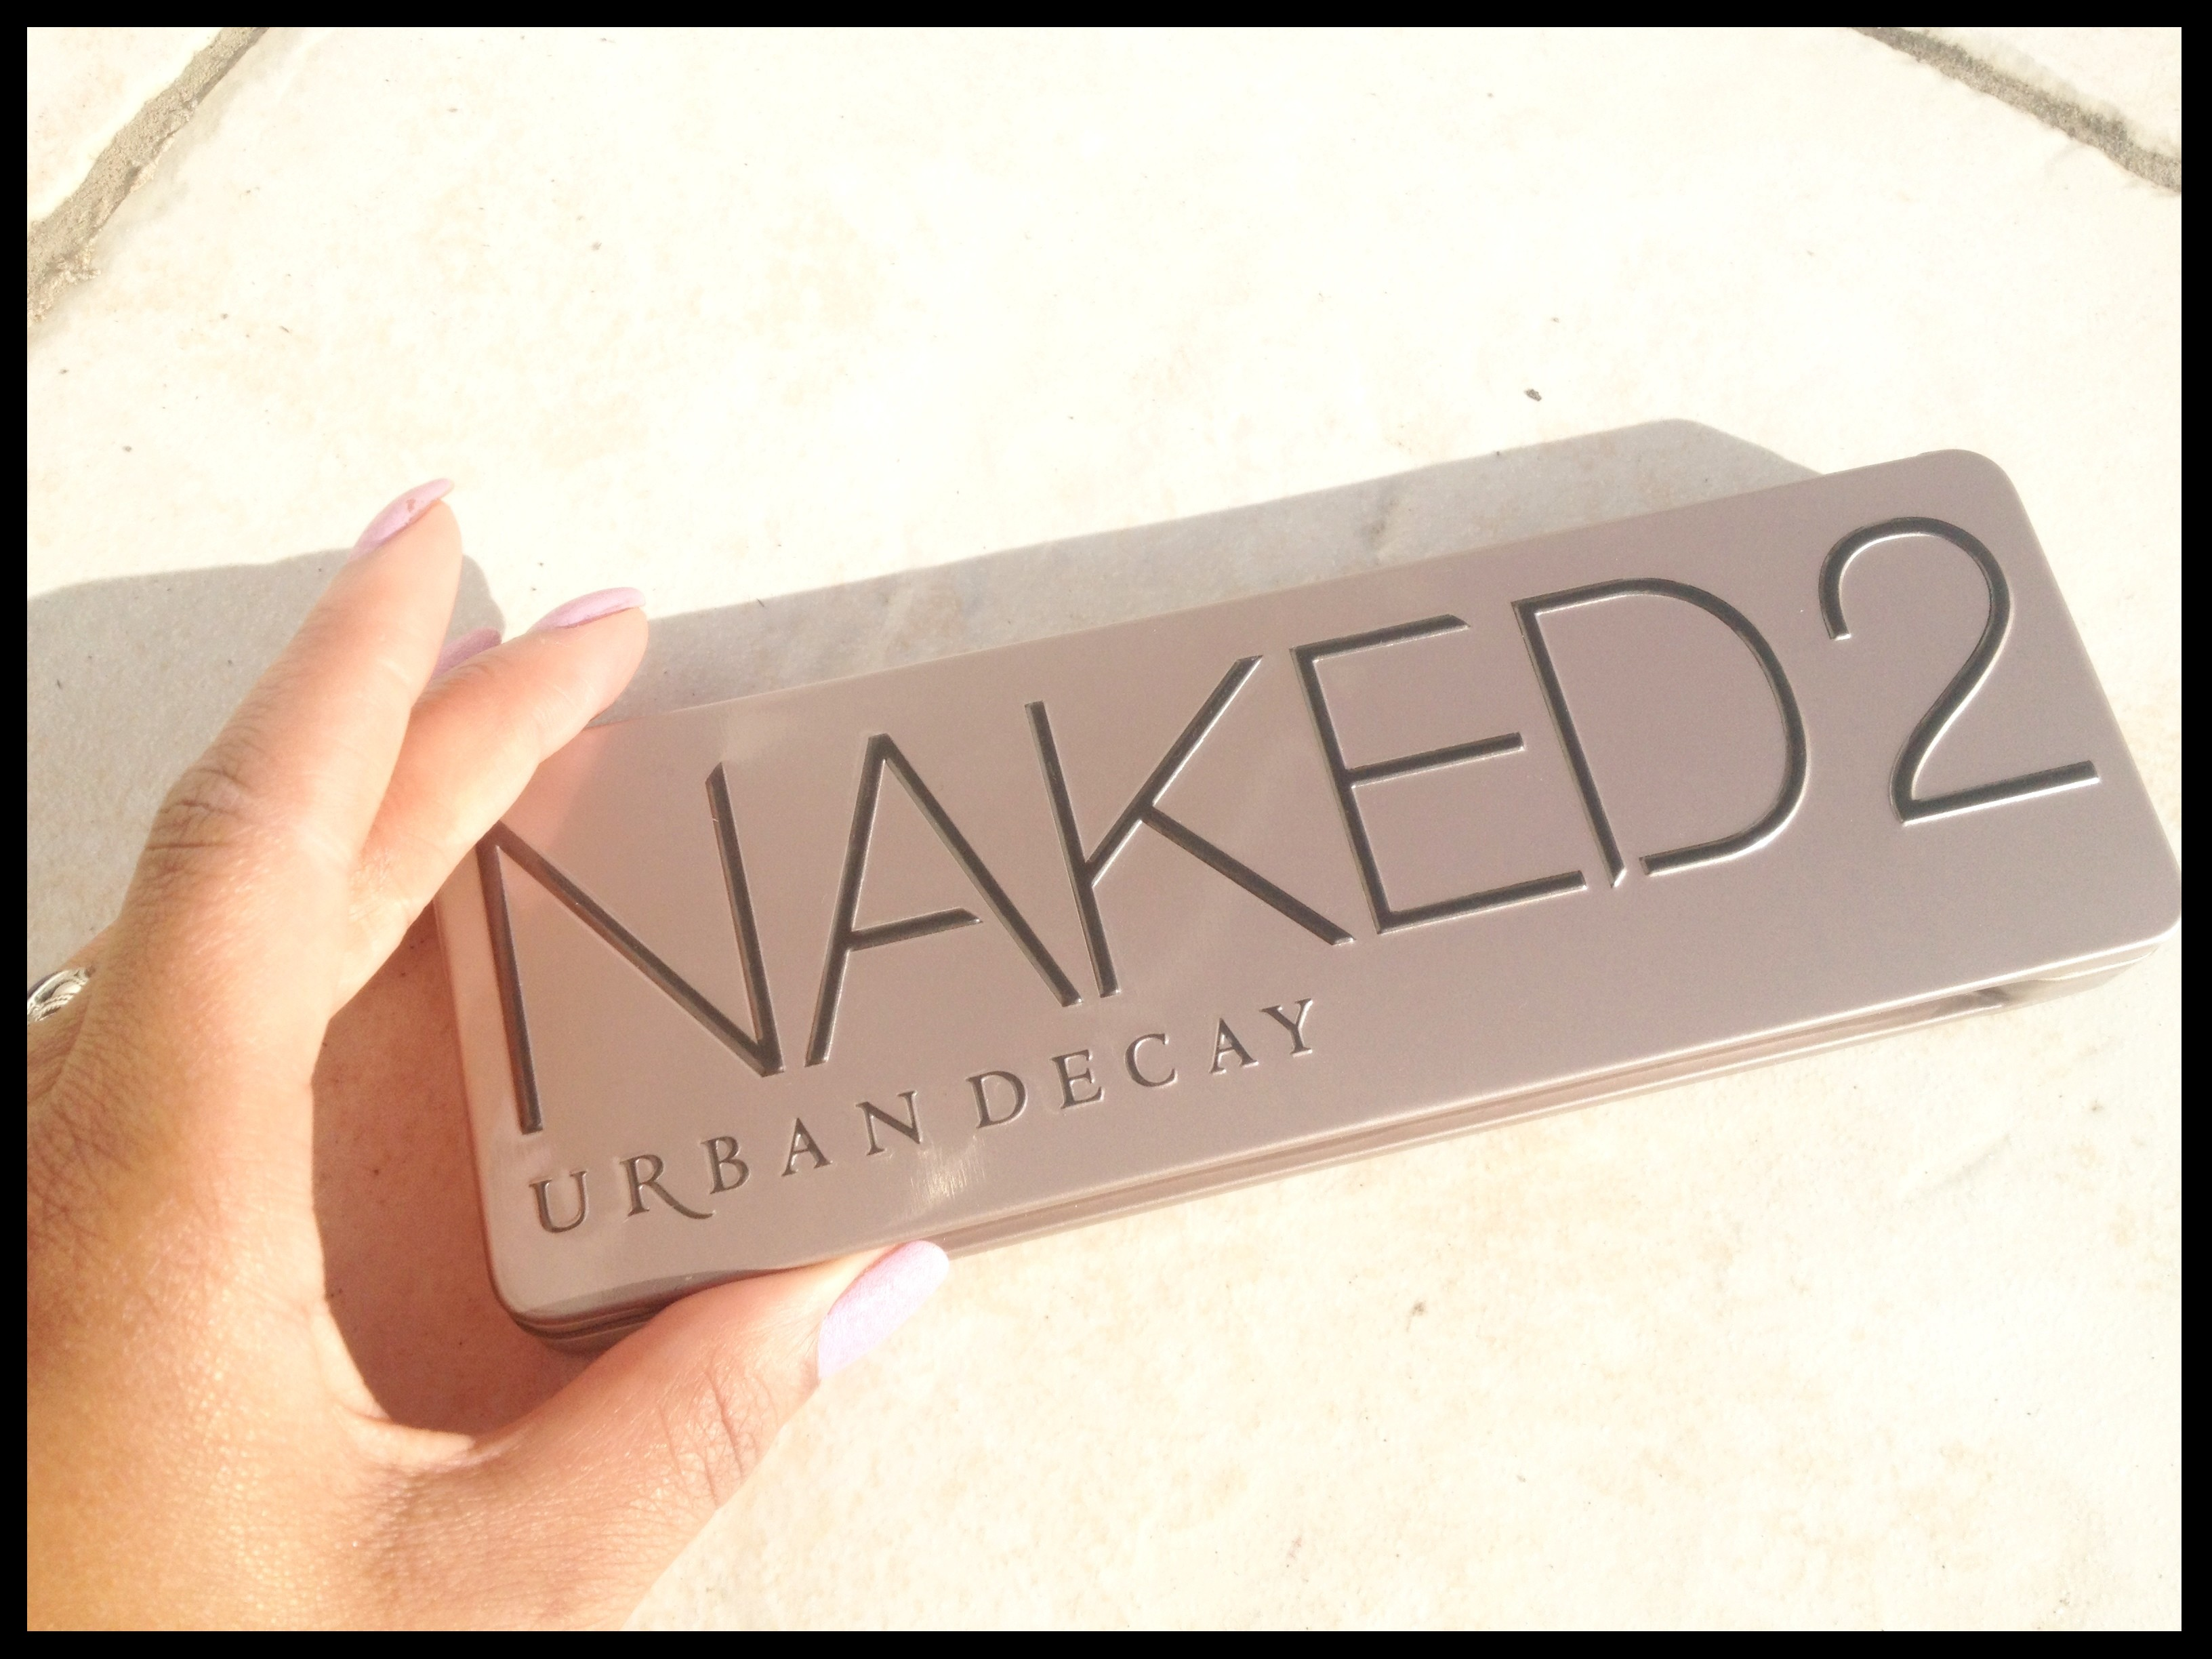 Naked 2 by Urban Decay